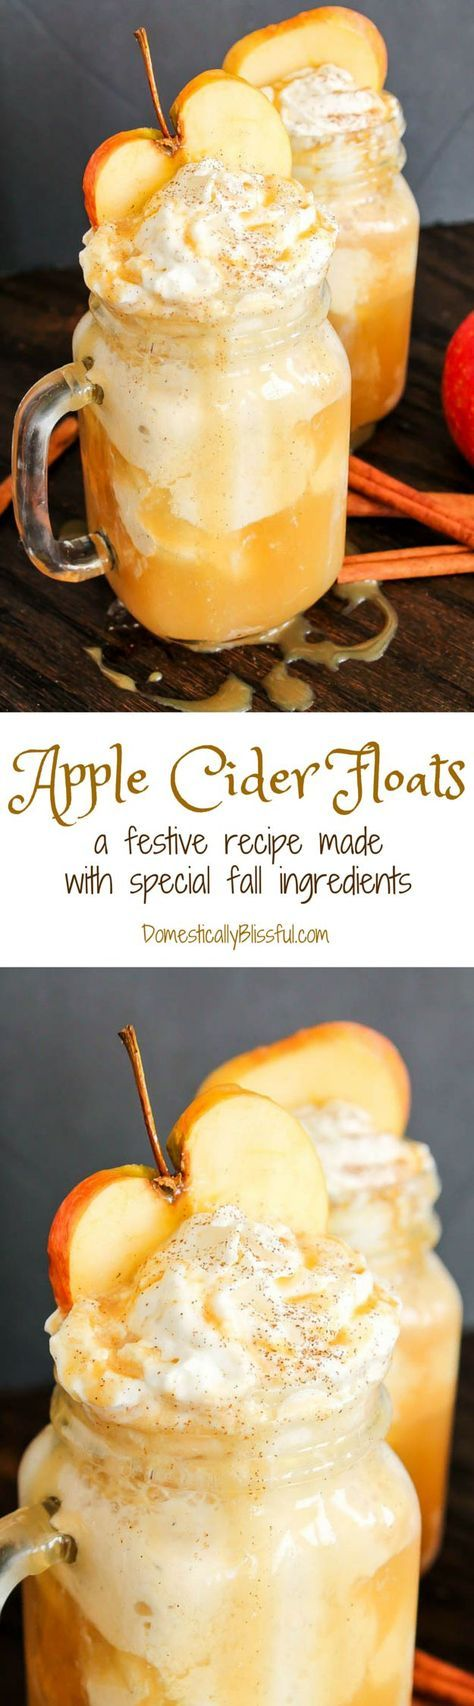 These Apple Cider Floats are made from special fall ingredients & are a perfect way to enjoy the flavors of fall as the weather begins to cool! Fall is filled w